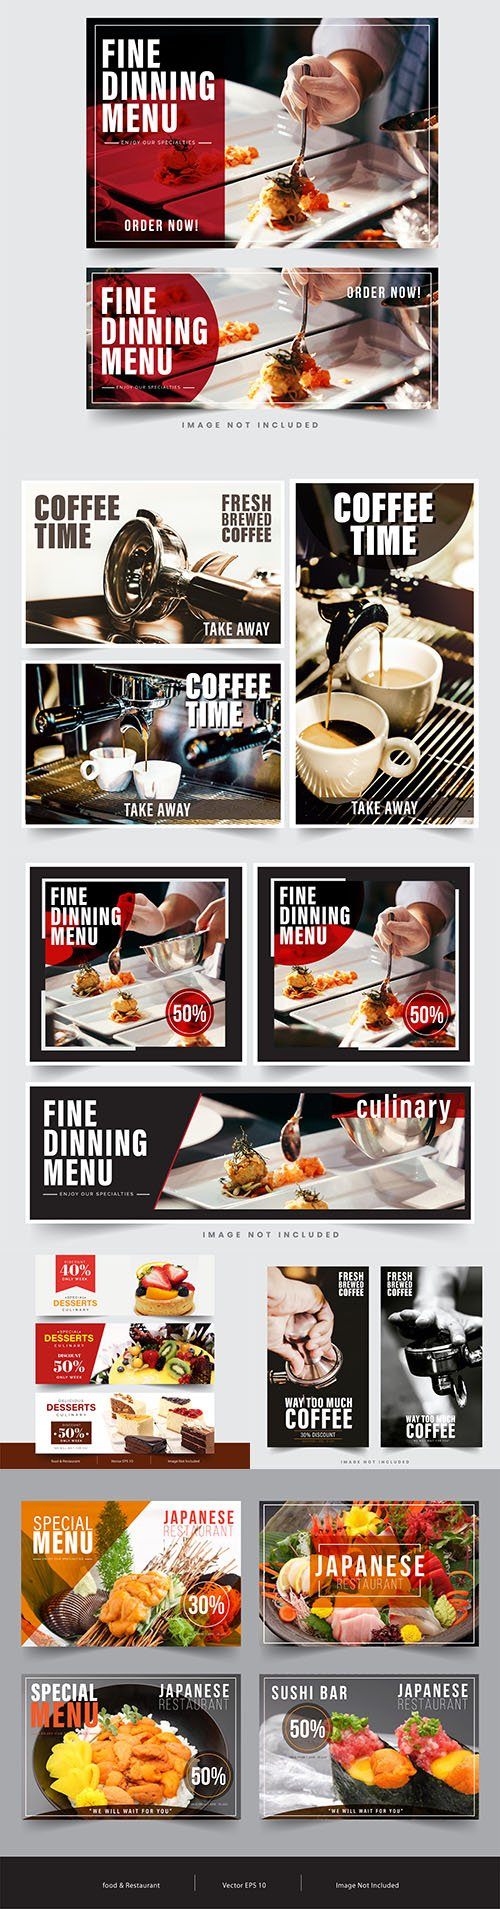 Banner restaurant social networks design template